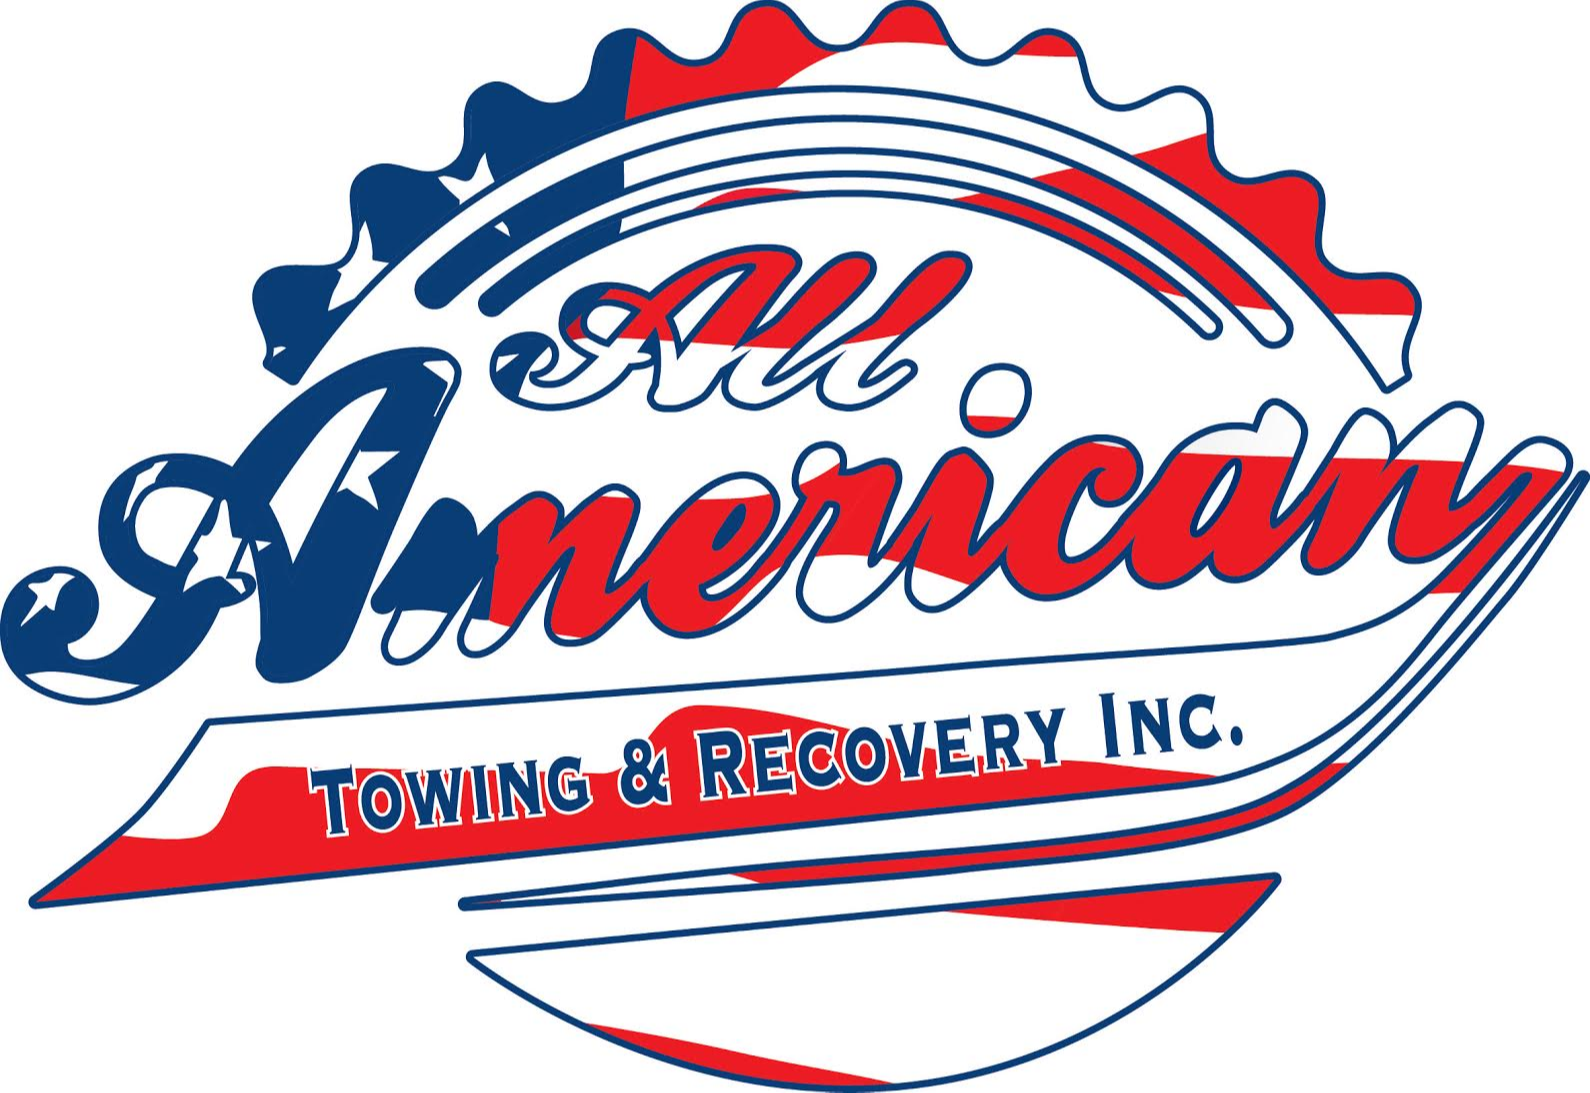 All American Towing & Recovery Inc logo